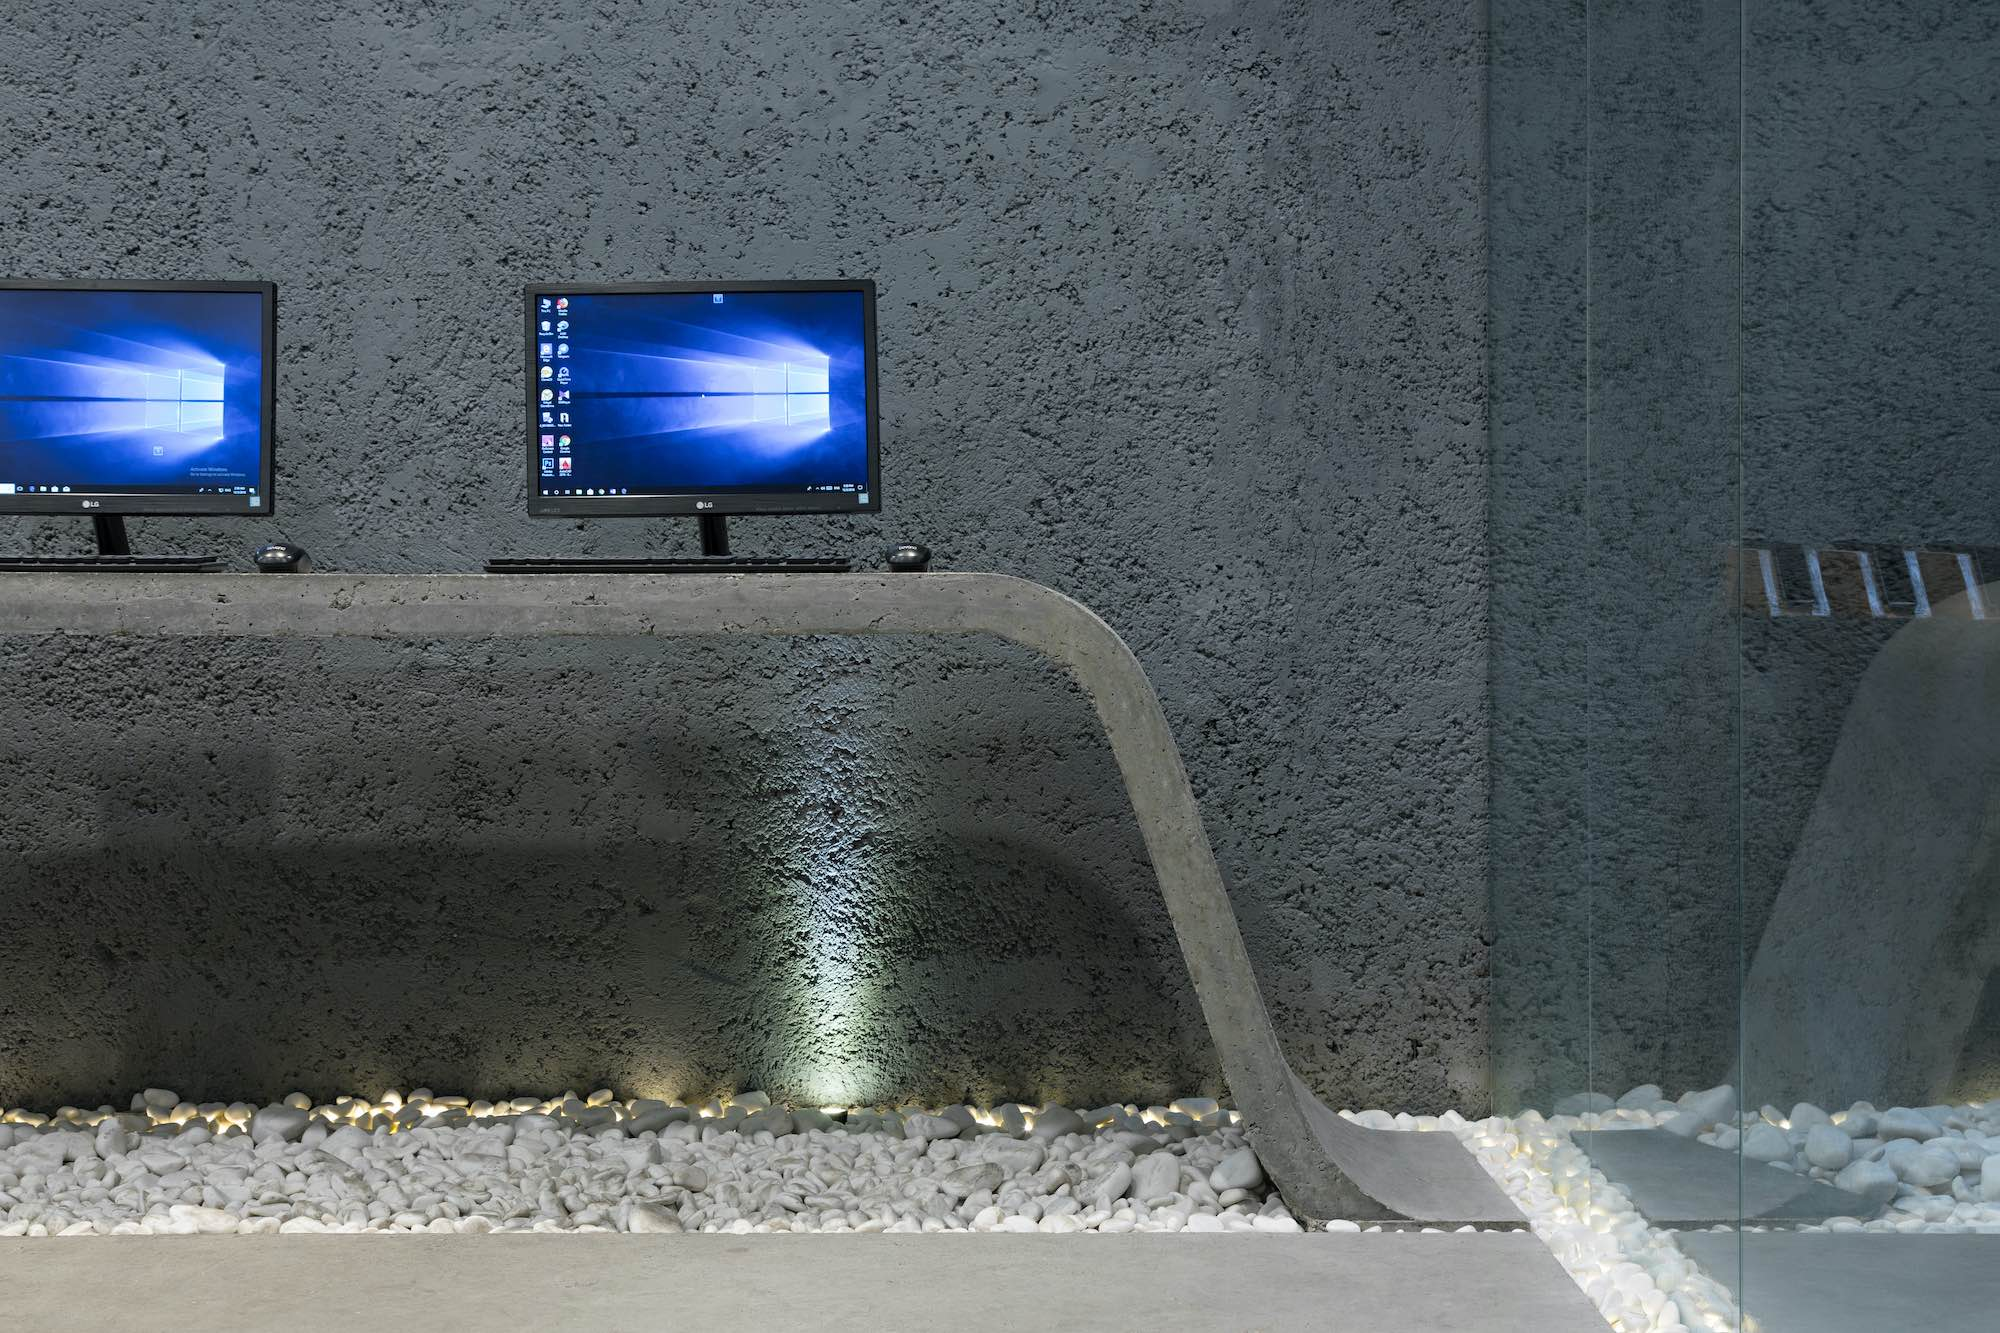 an LG monitor on a concrete office desk